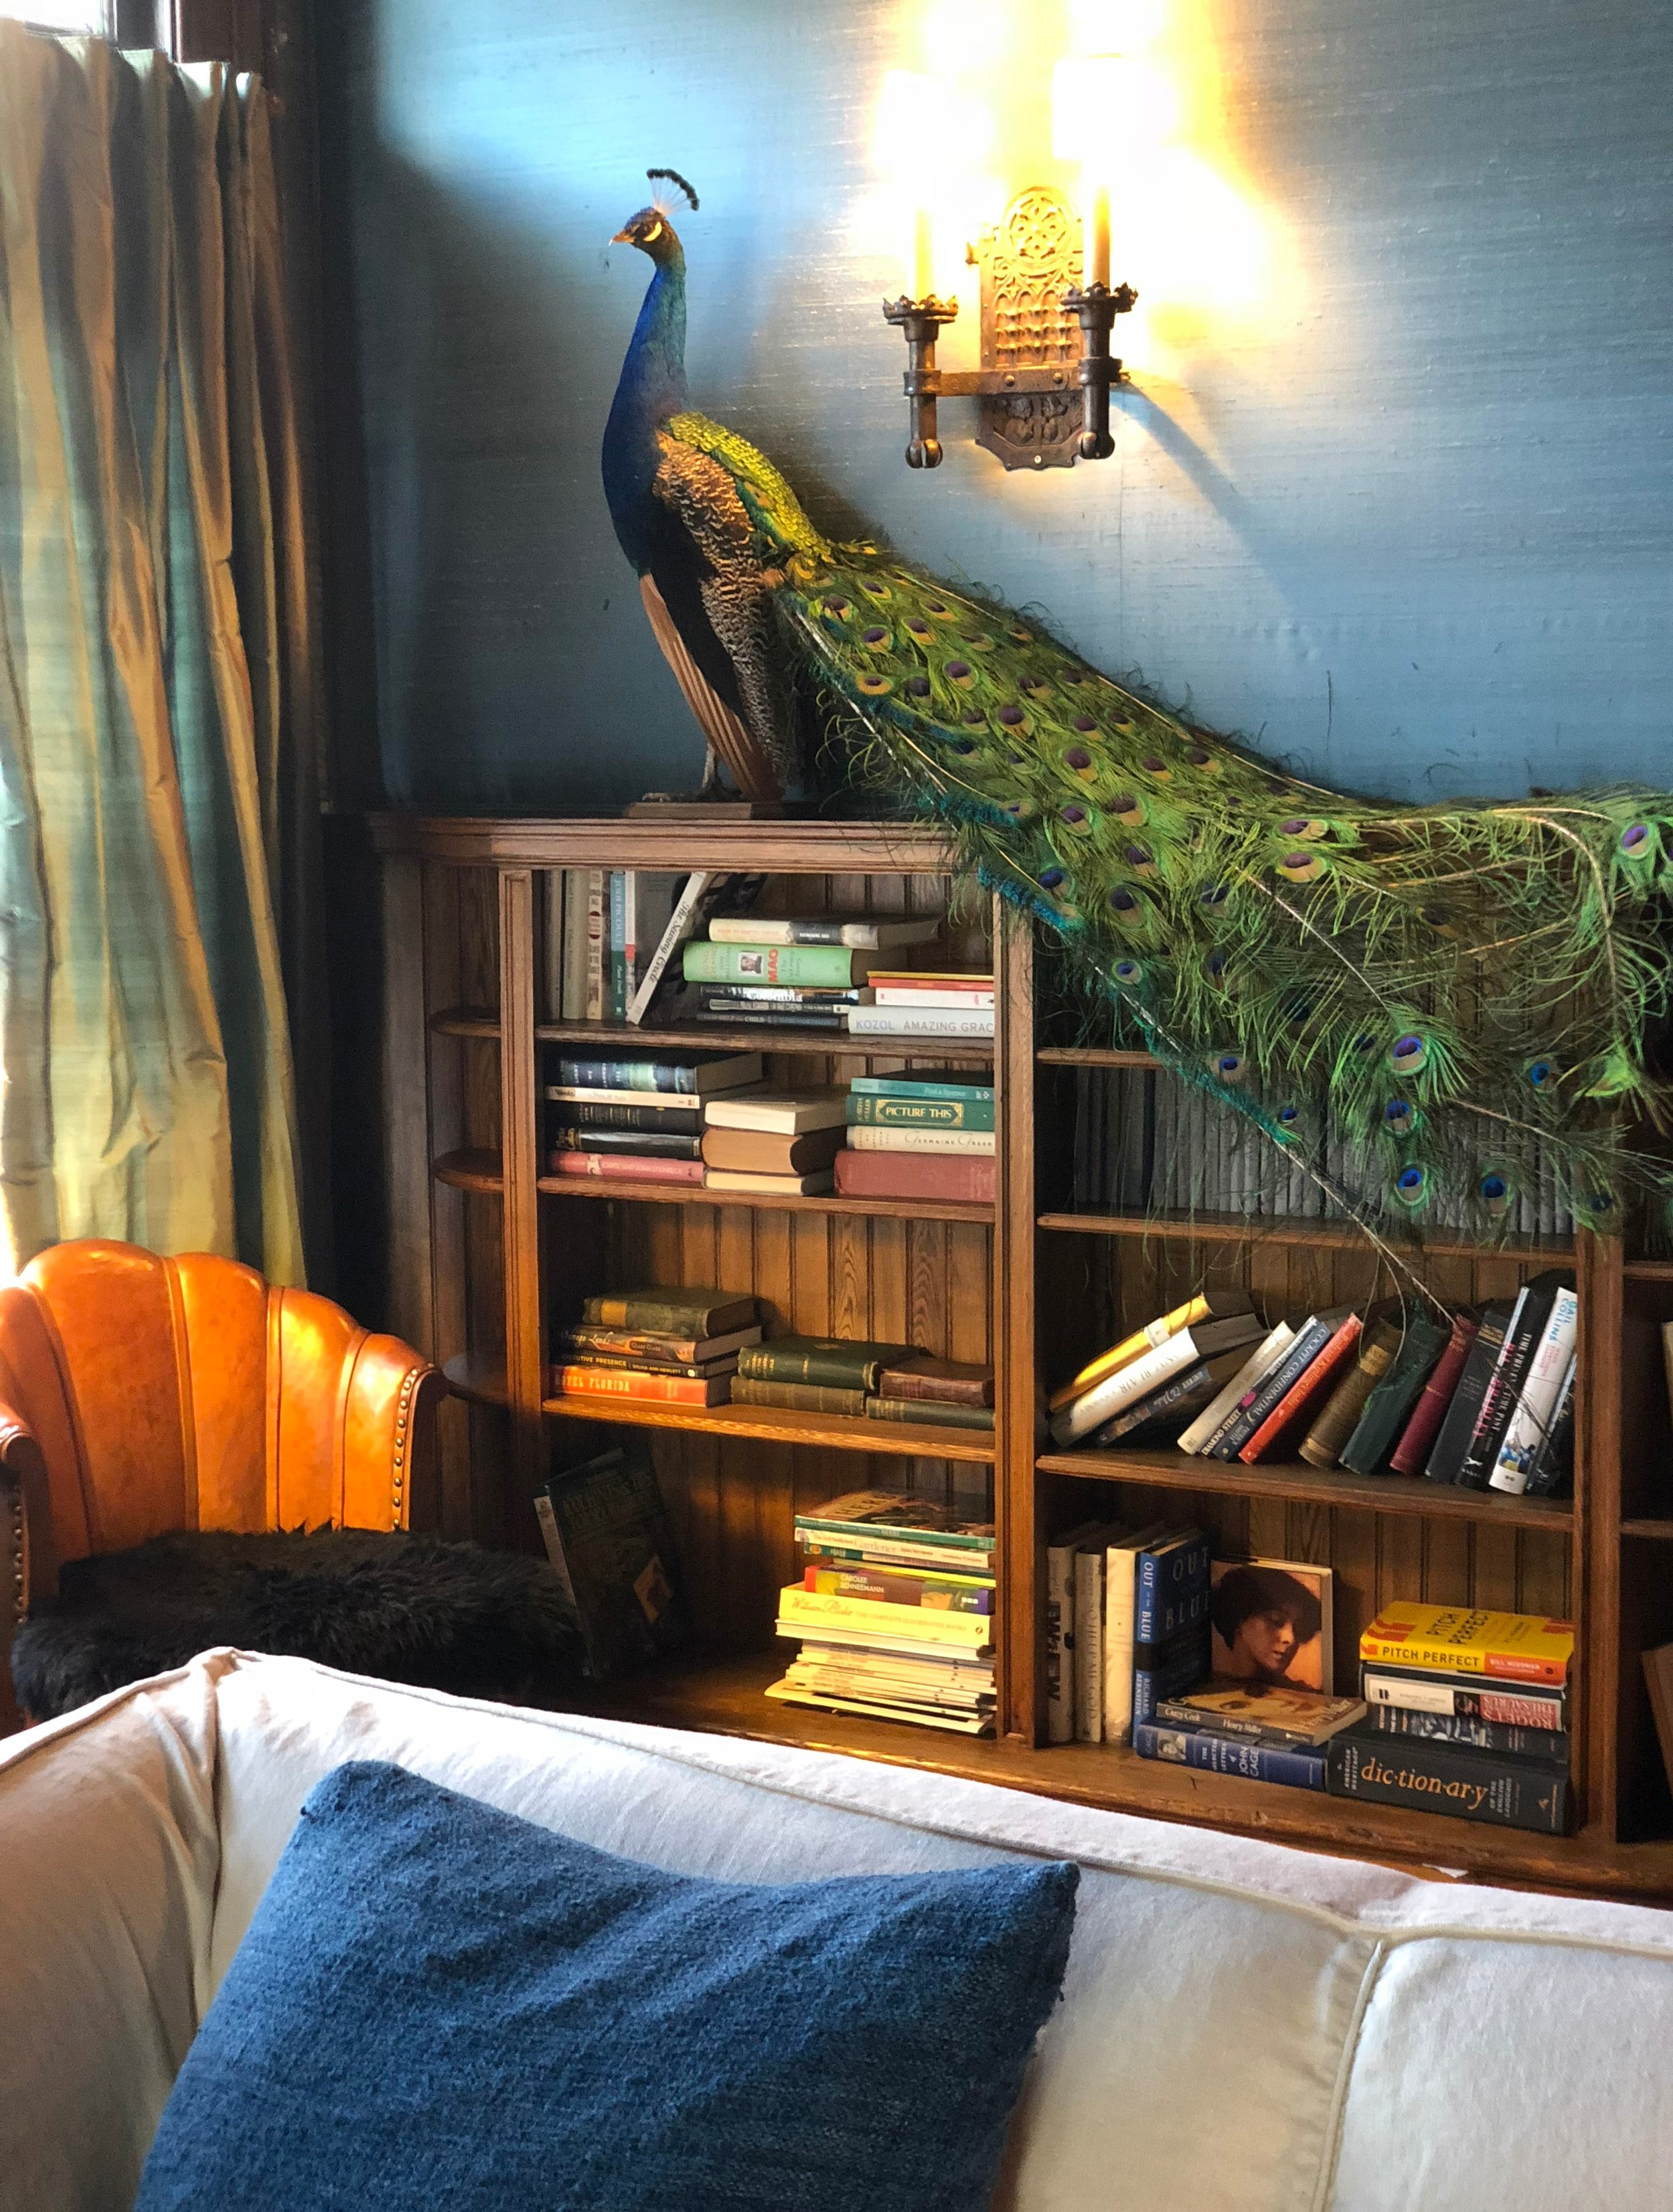 There's a little eclectic vibe going on at the Tiger House. This peacock welcomes visitors to relax in the library and page through the numerous Hudson history books.